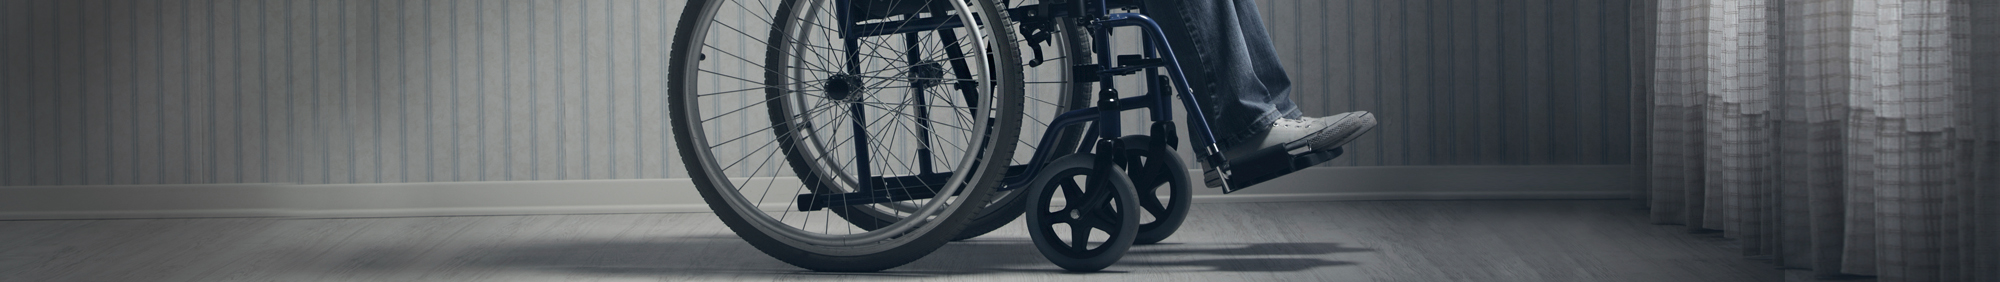 Spinal cord injury lawyers in Louisiana